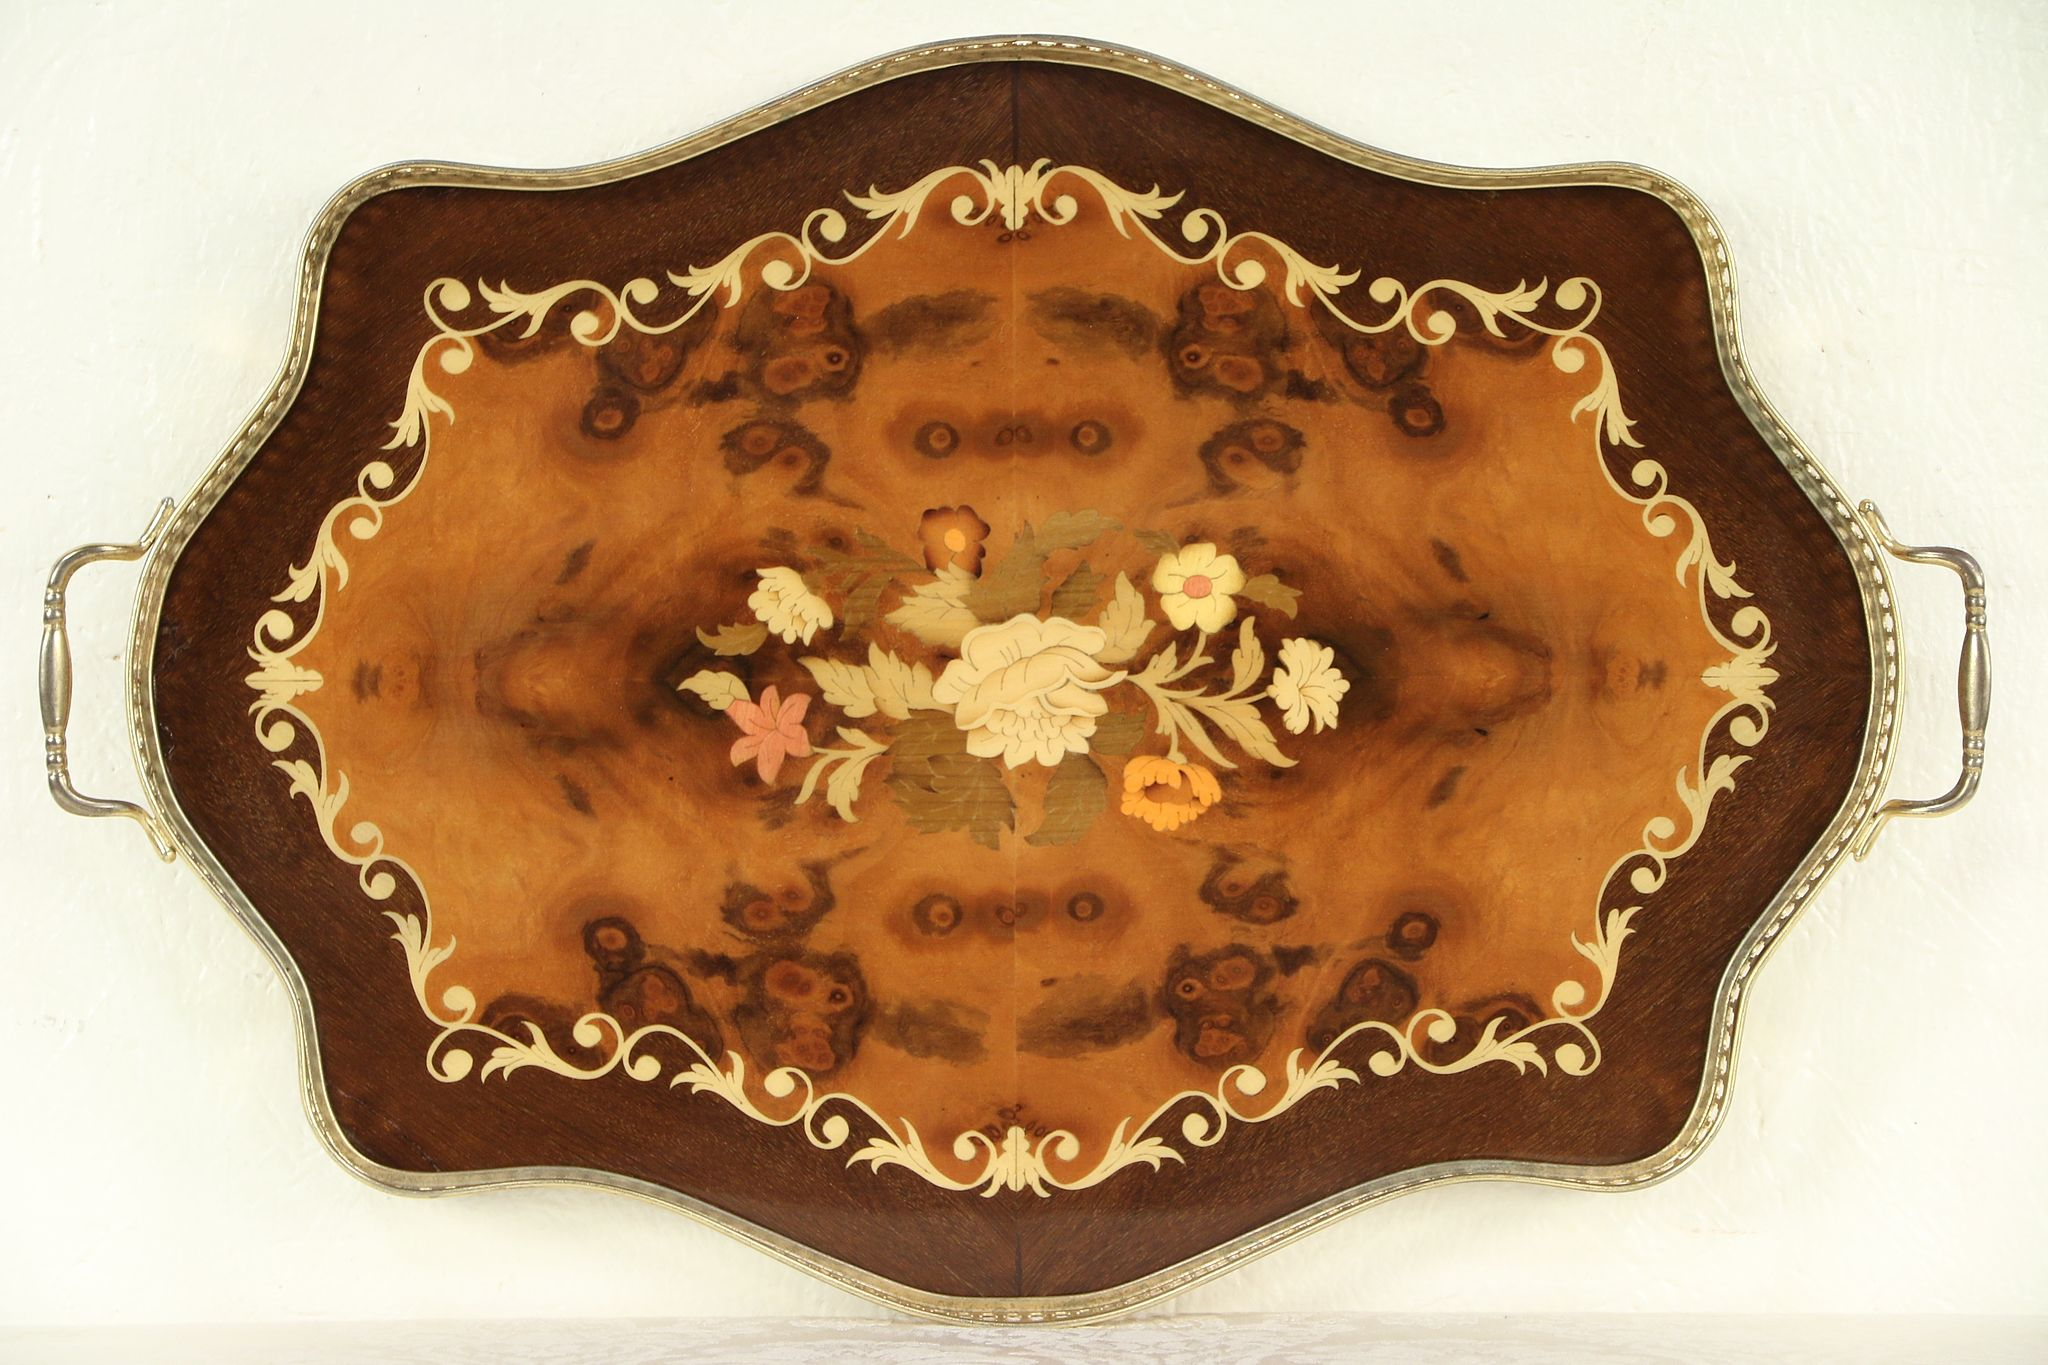 Gold Serving Tray Italian Inlaid Marquetry Vintage Serving Tray Gold Plated Gallery 29336